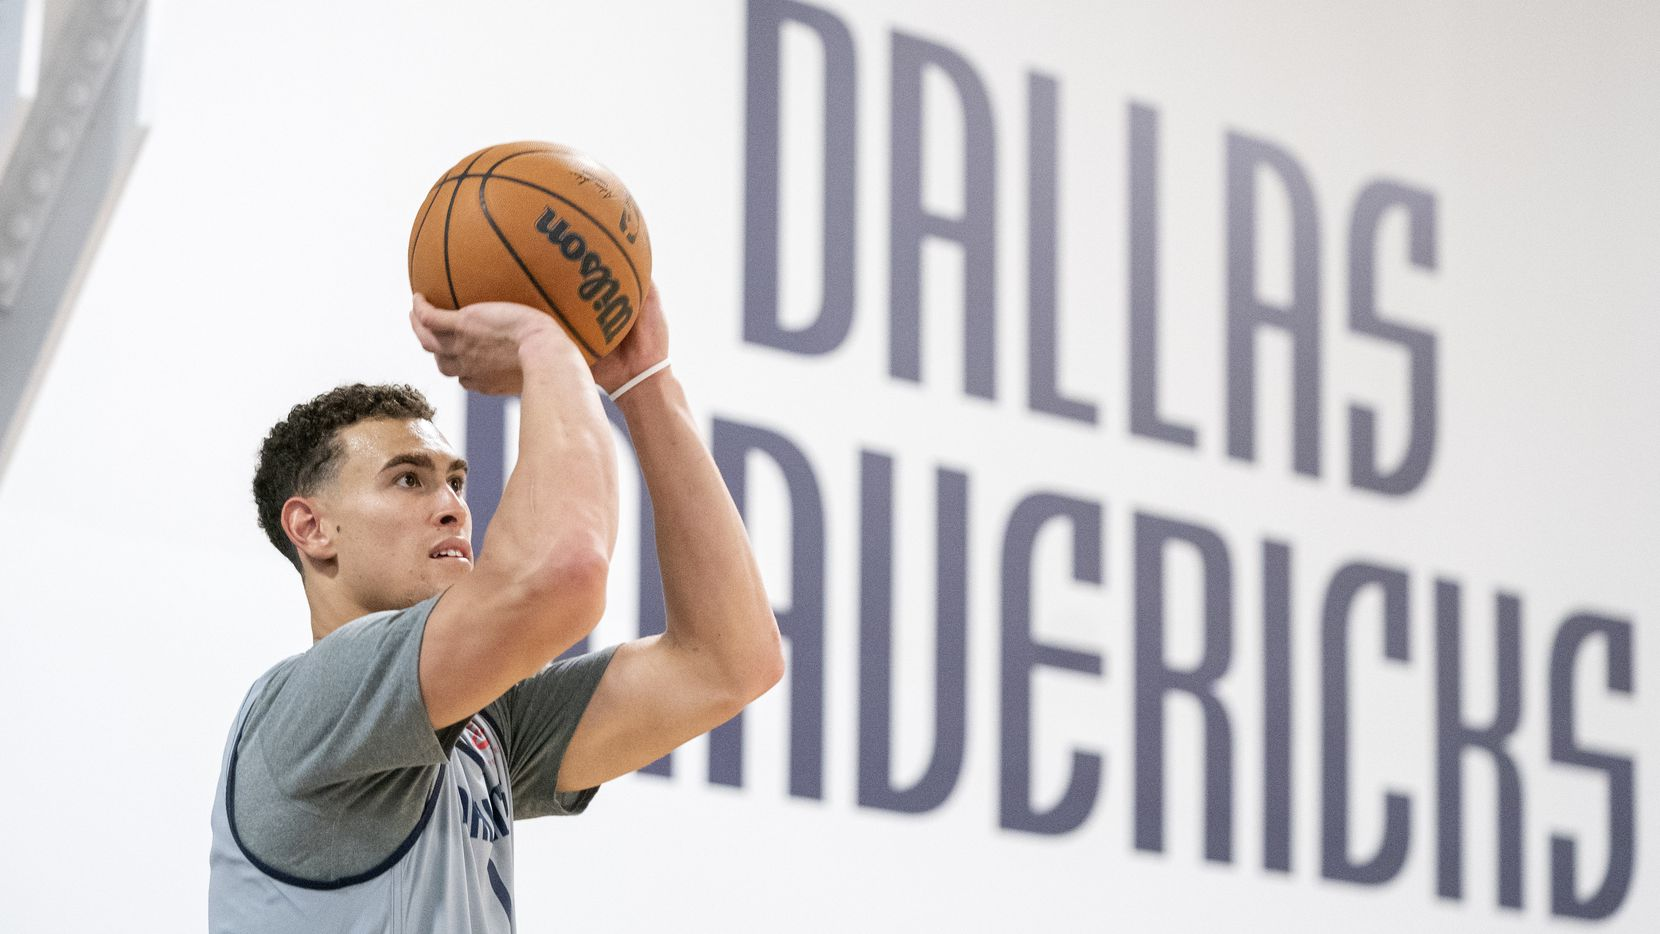 Dallas Mavericks center Dwight Powell (7) shoots a 3-pointer during the first practice of training camp, Tuesday, September 28, 2021 at the Dallas Mavericks Training Center in Dallas.